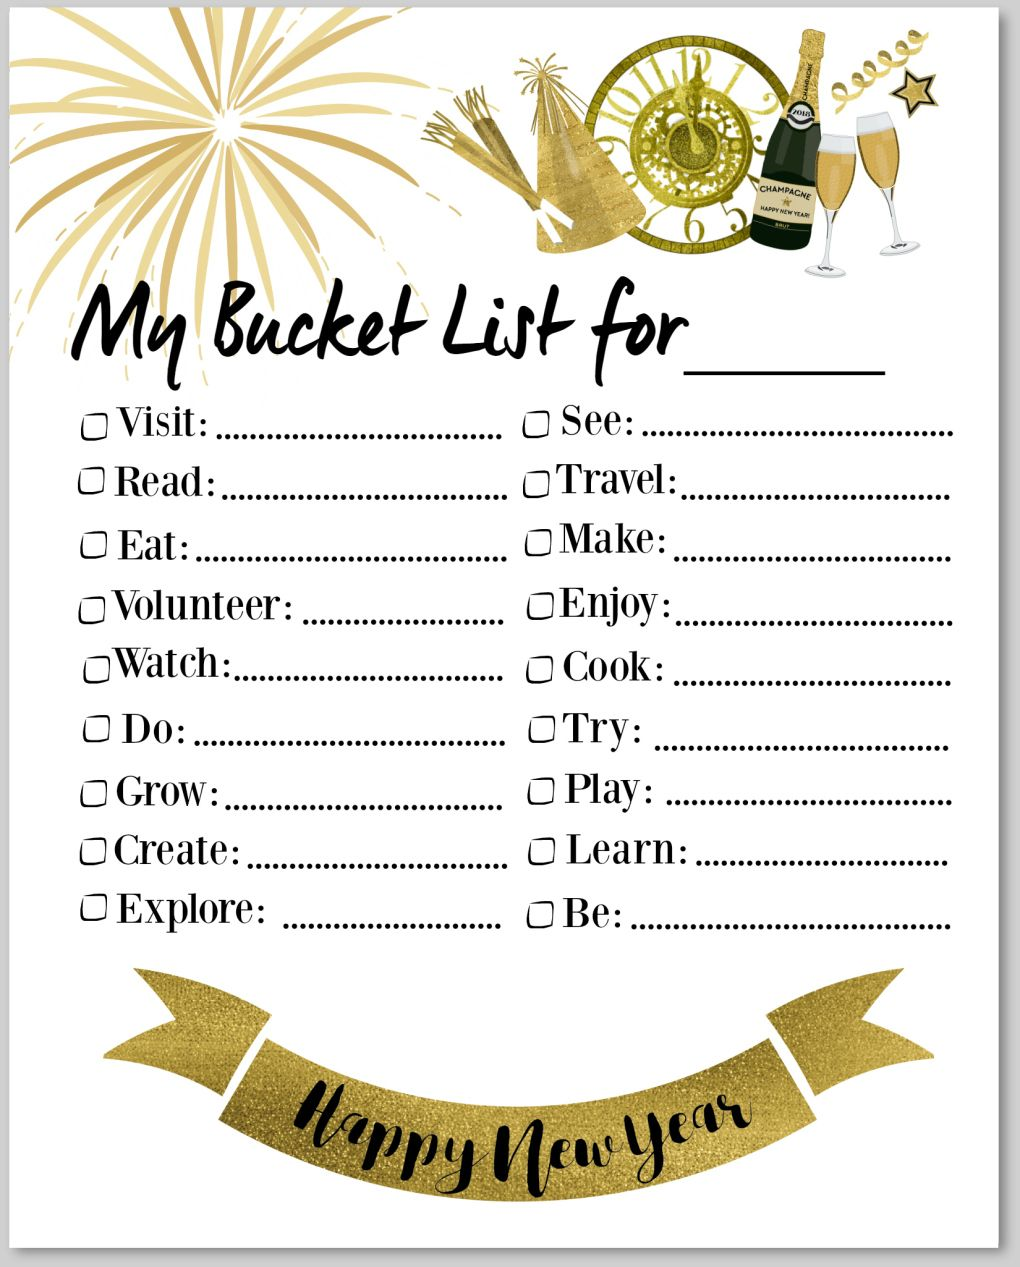 Print Our FREE New Year's Bucket List Templates